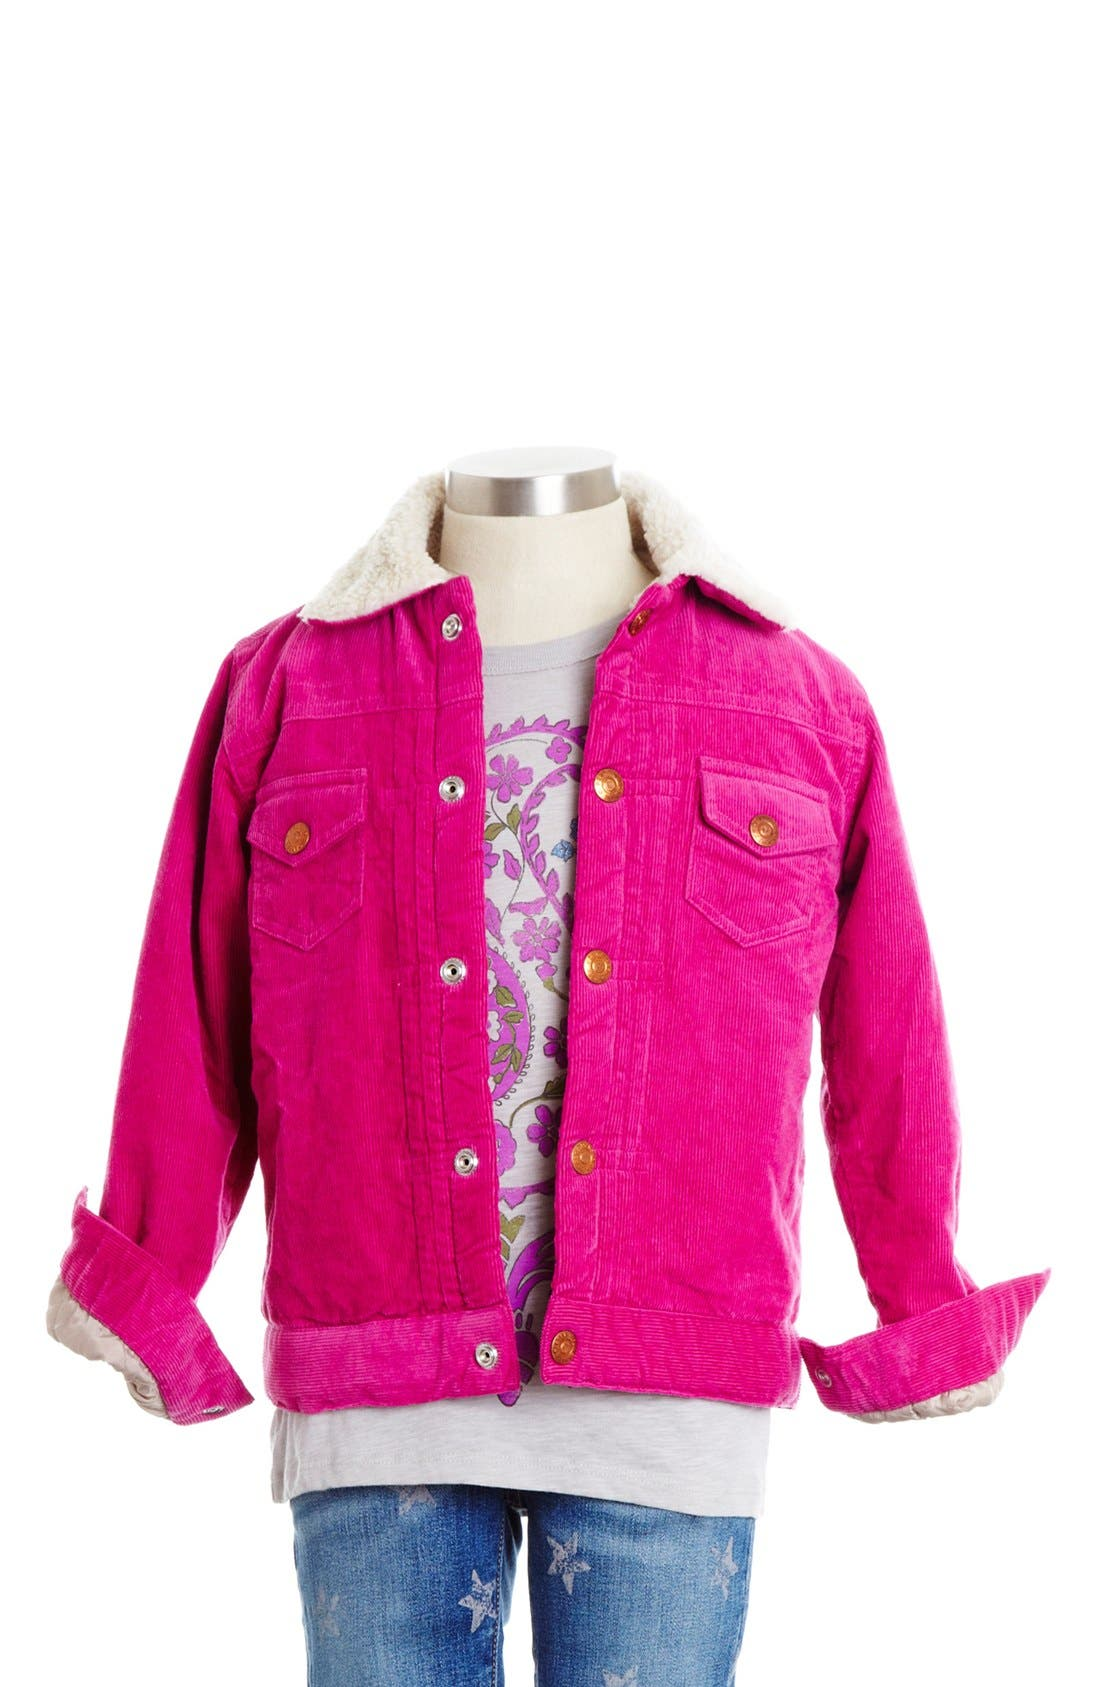 Alternate Image 1 Selected - Peek Faux Shearling Lined Corduroy Jacket (Toddler Girls, Little Girls & Big Girls)